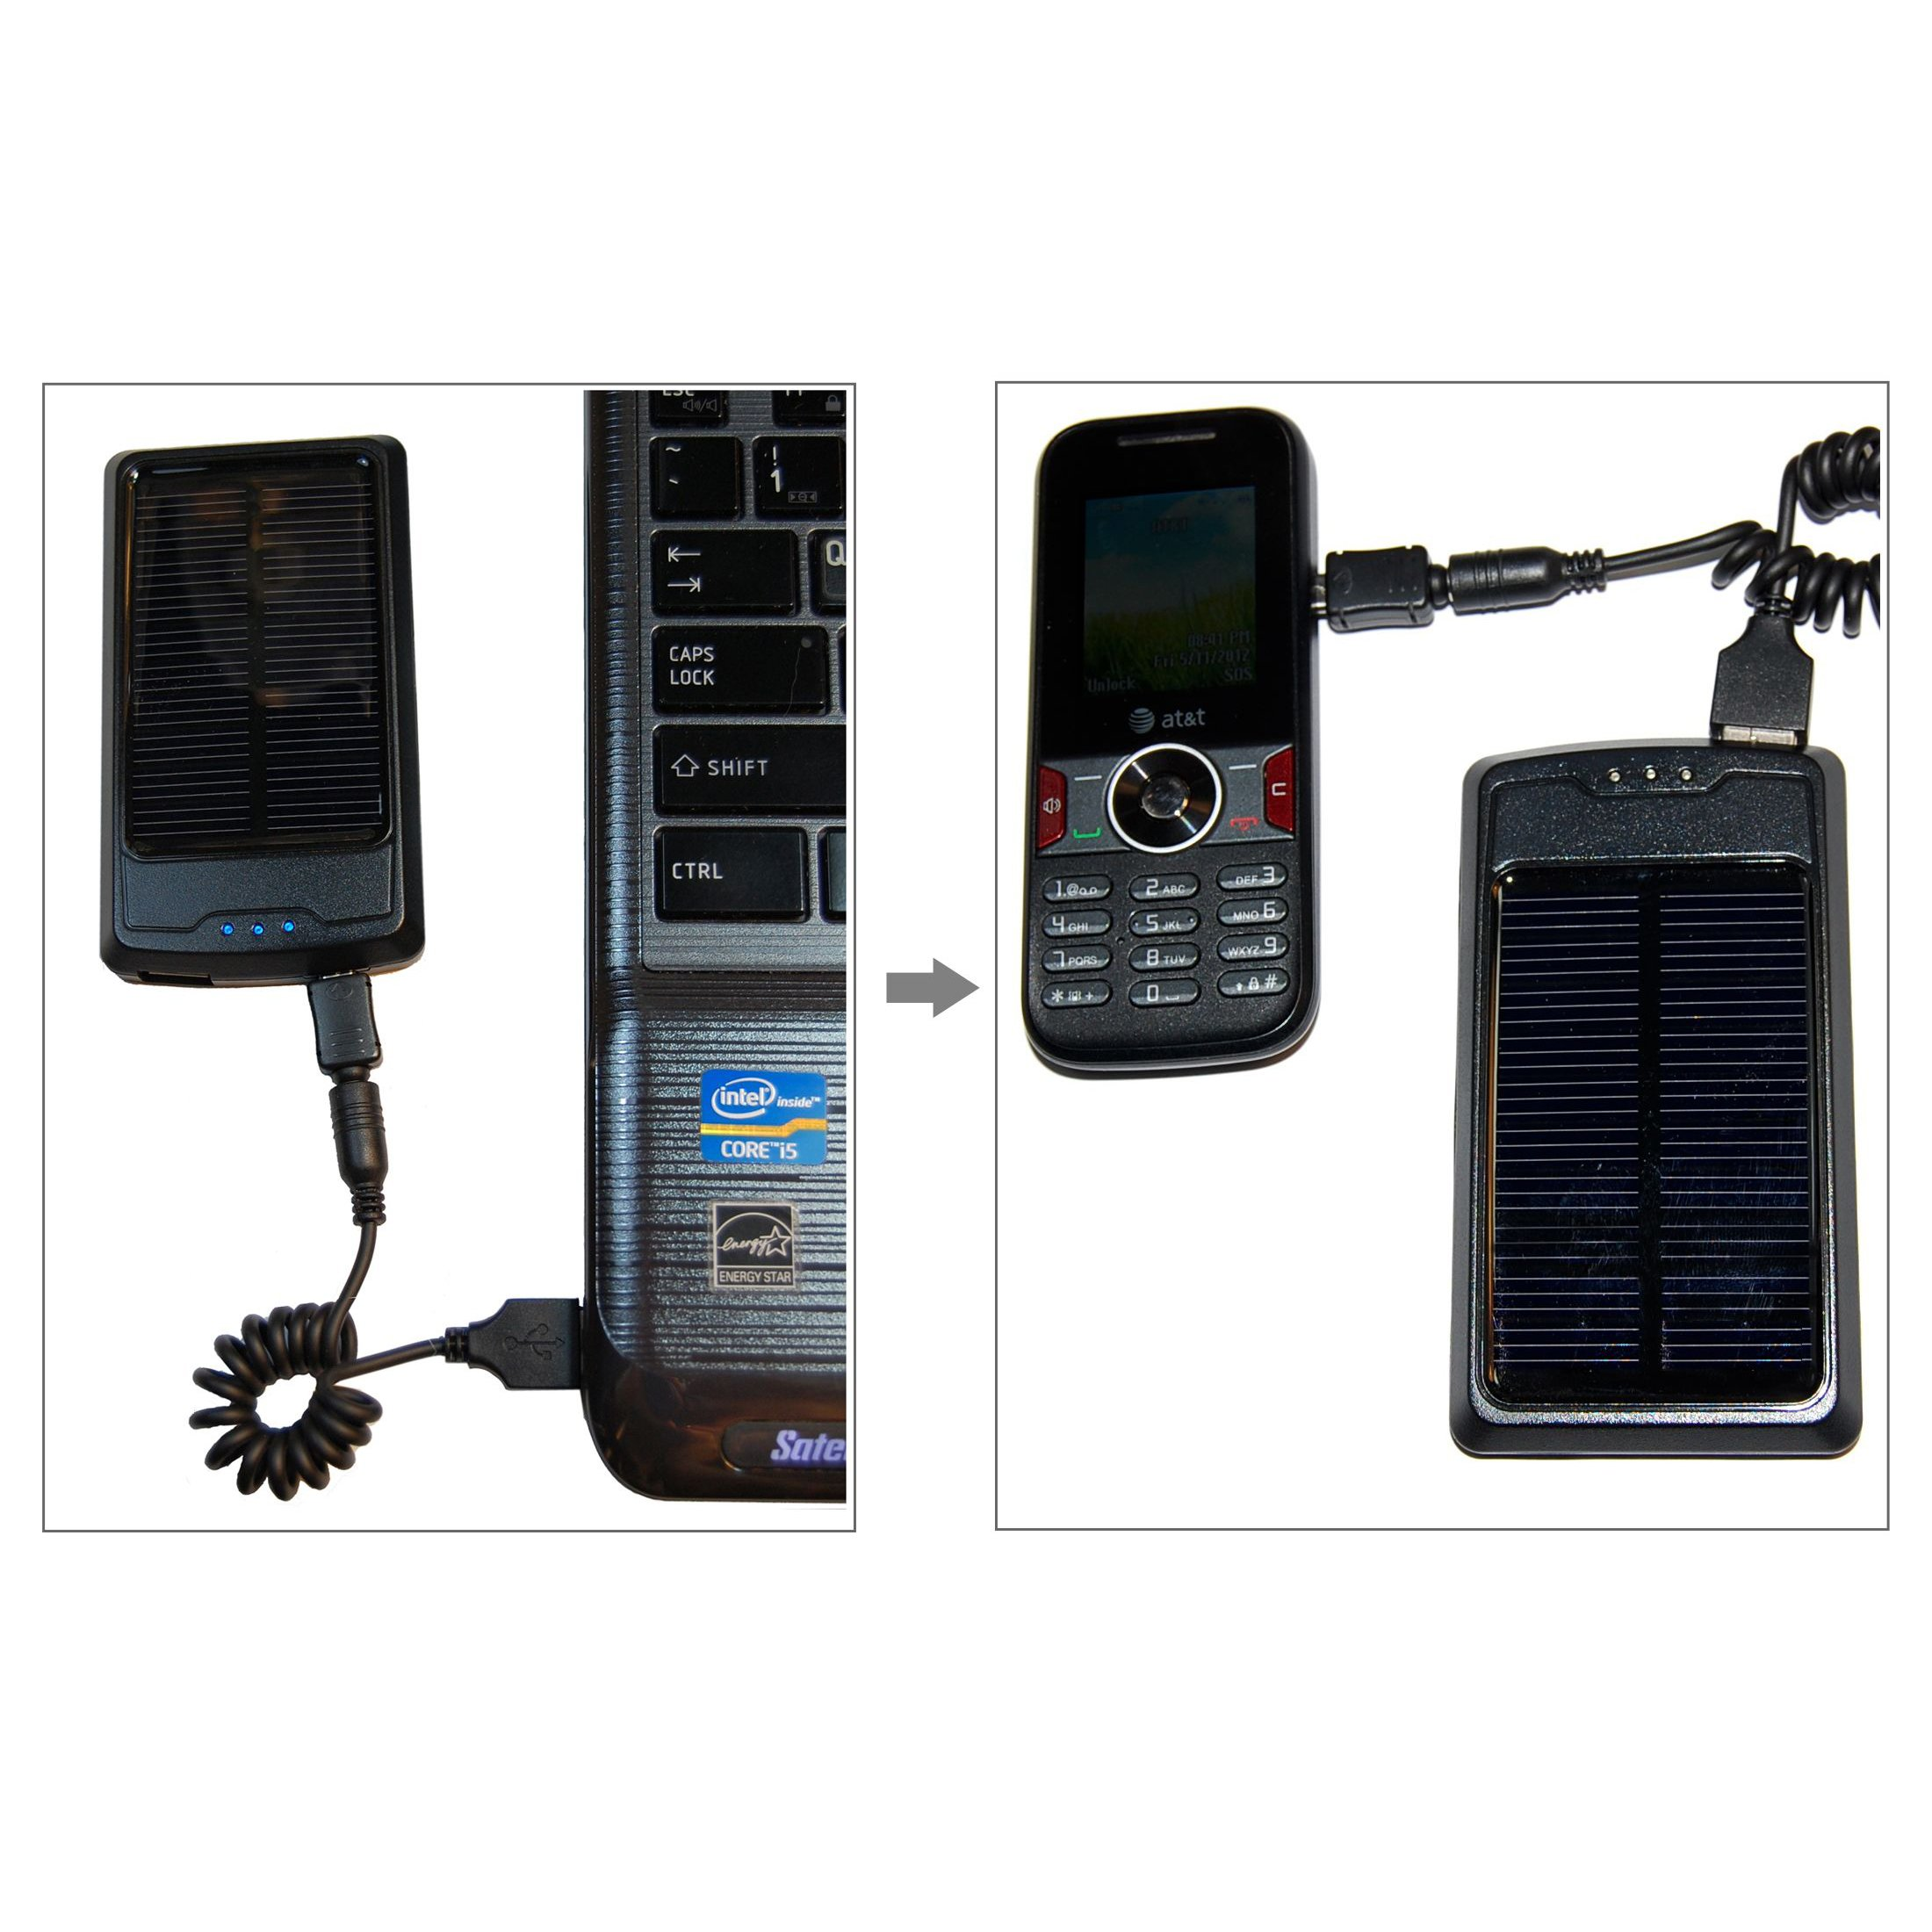 HQRP Portable Slim Power Bank, Battery Charger, AC DC Adapter compatible with Sony Walkman NWZ-E353 NWZ-E354 NWZ-E355 Player + HQRP Solar Power Meter